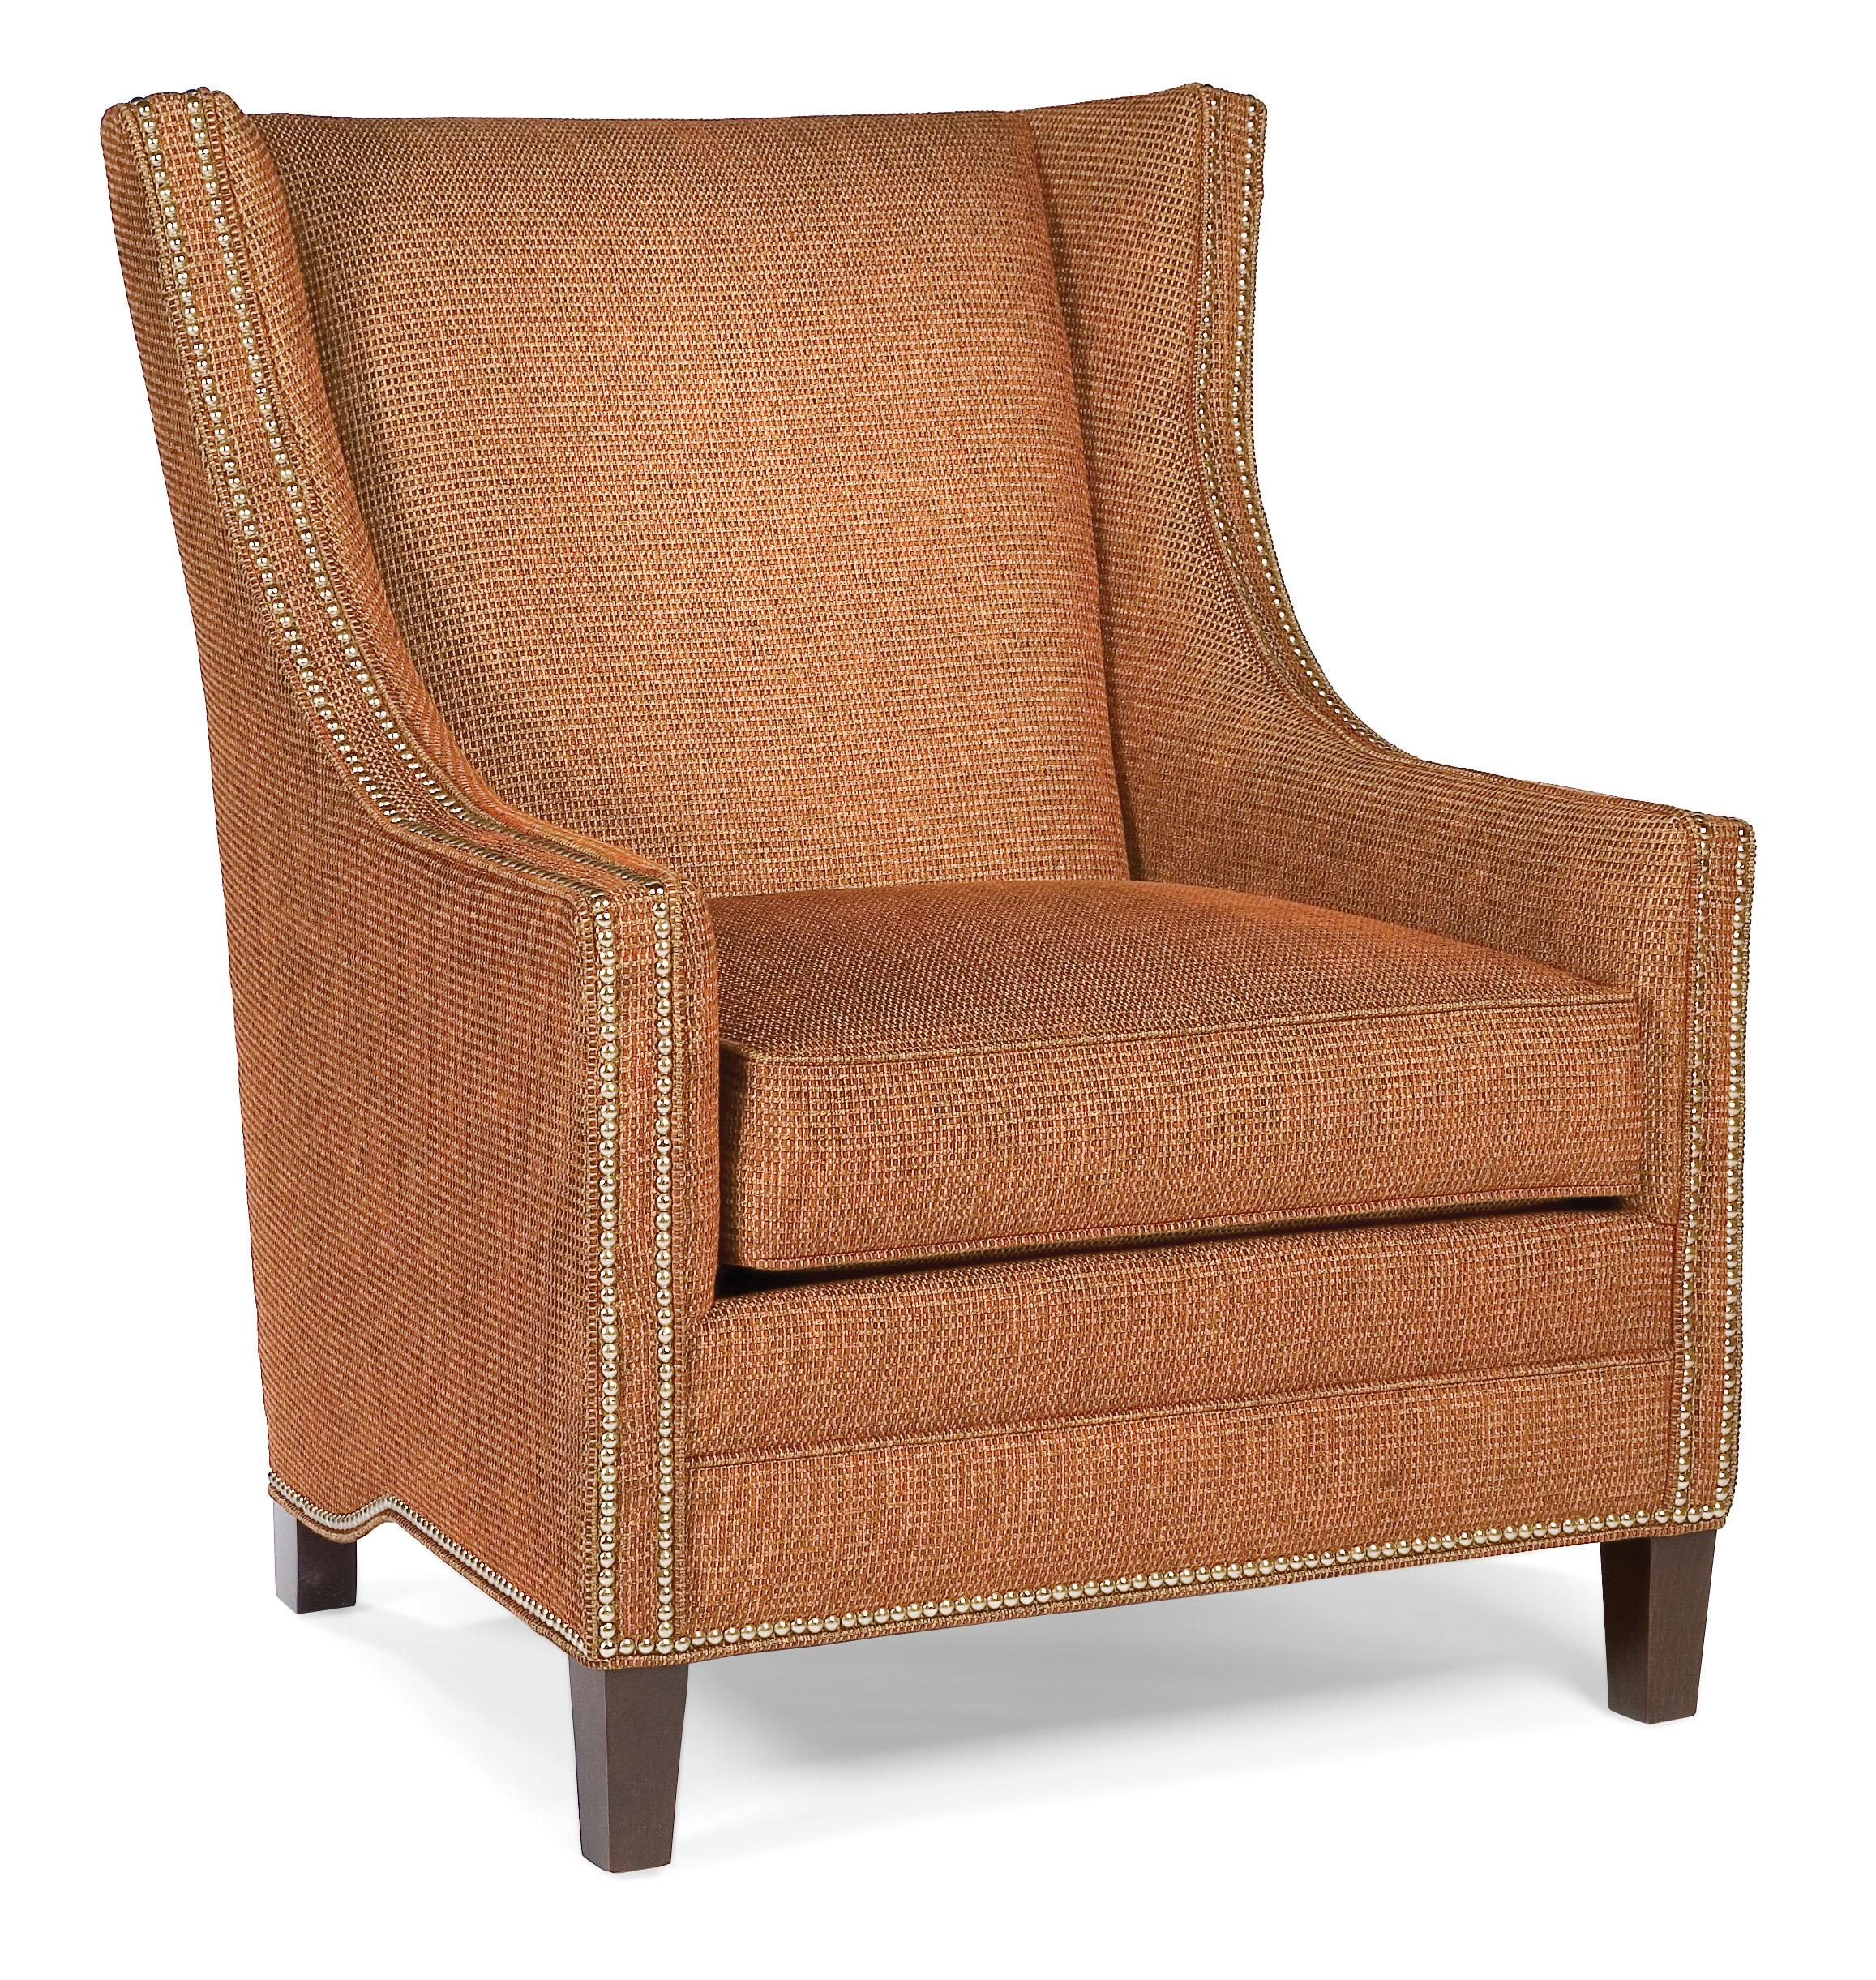 Fairfield Chair Fairfield Chairs Upholstered Lounge Chair With Nailhead